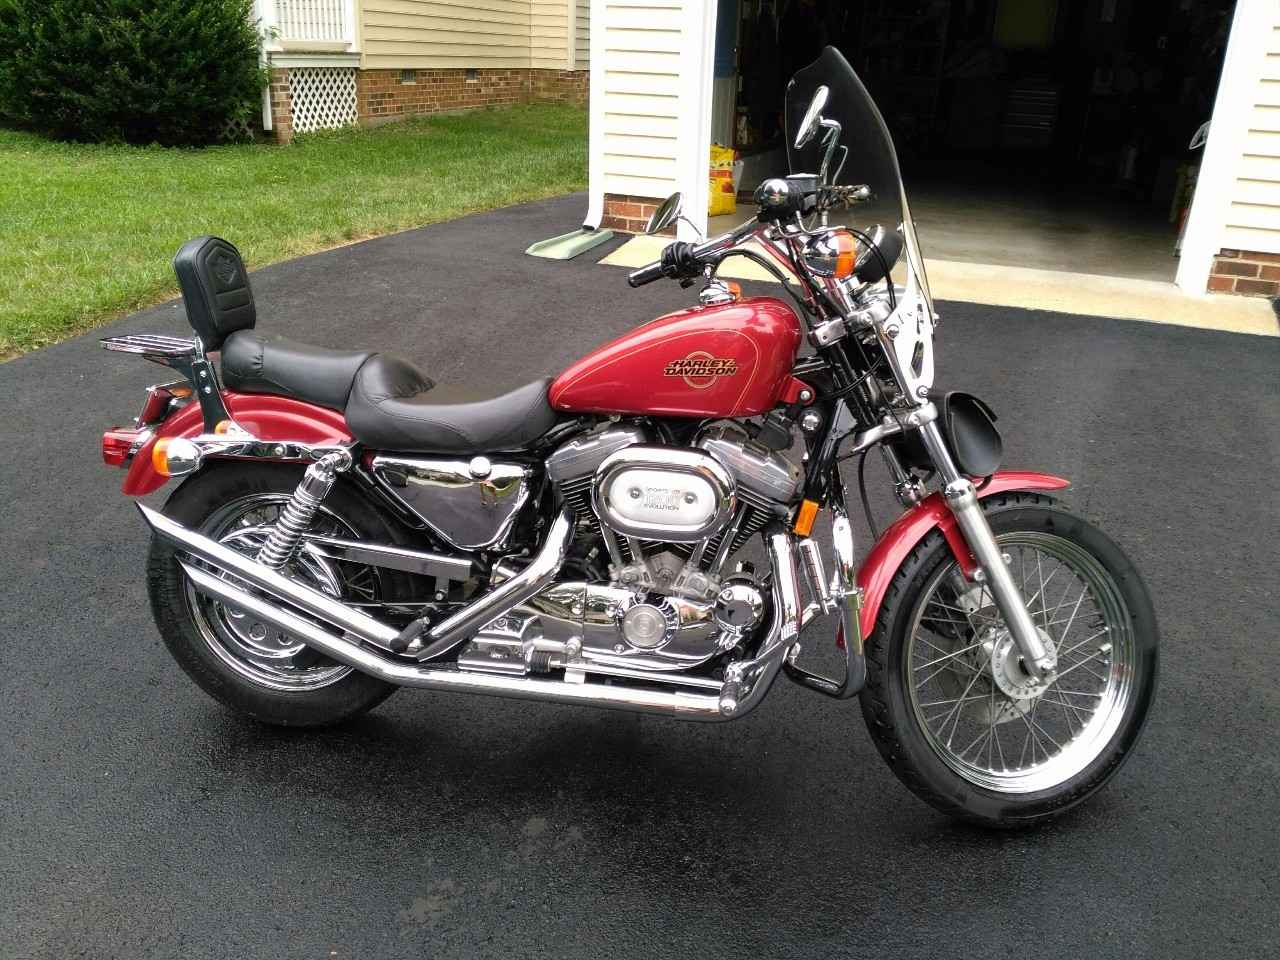 1997 Sportster 1200 - Car View Specs